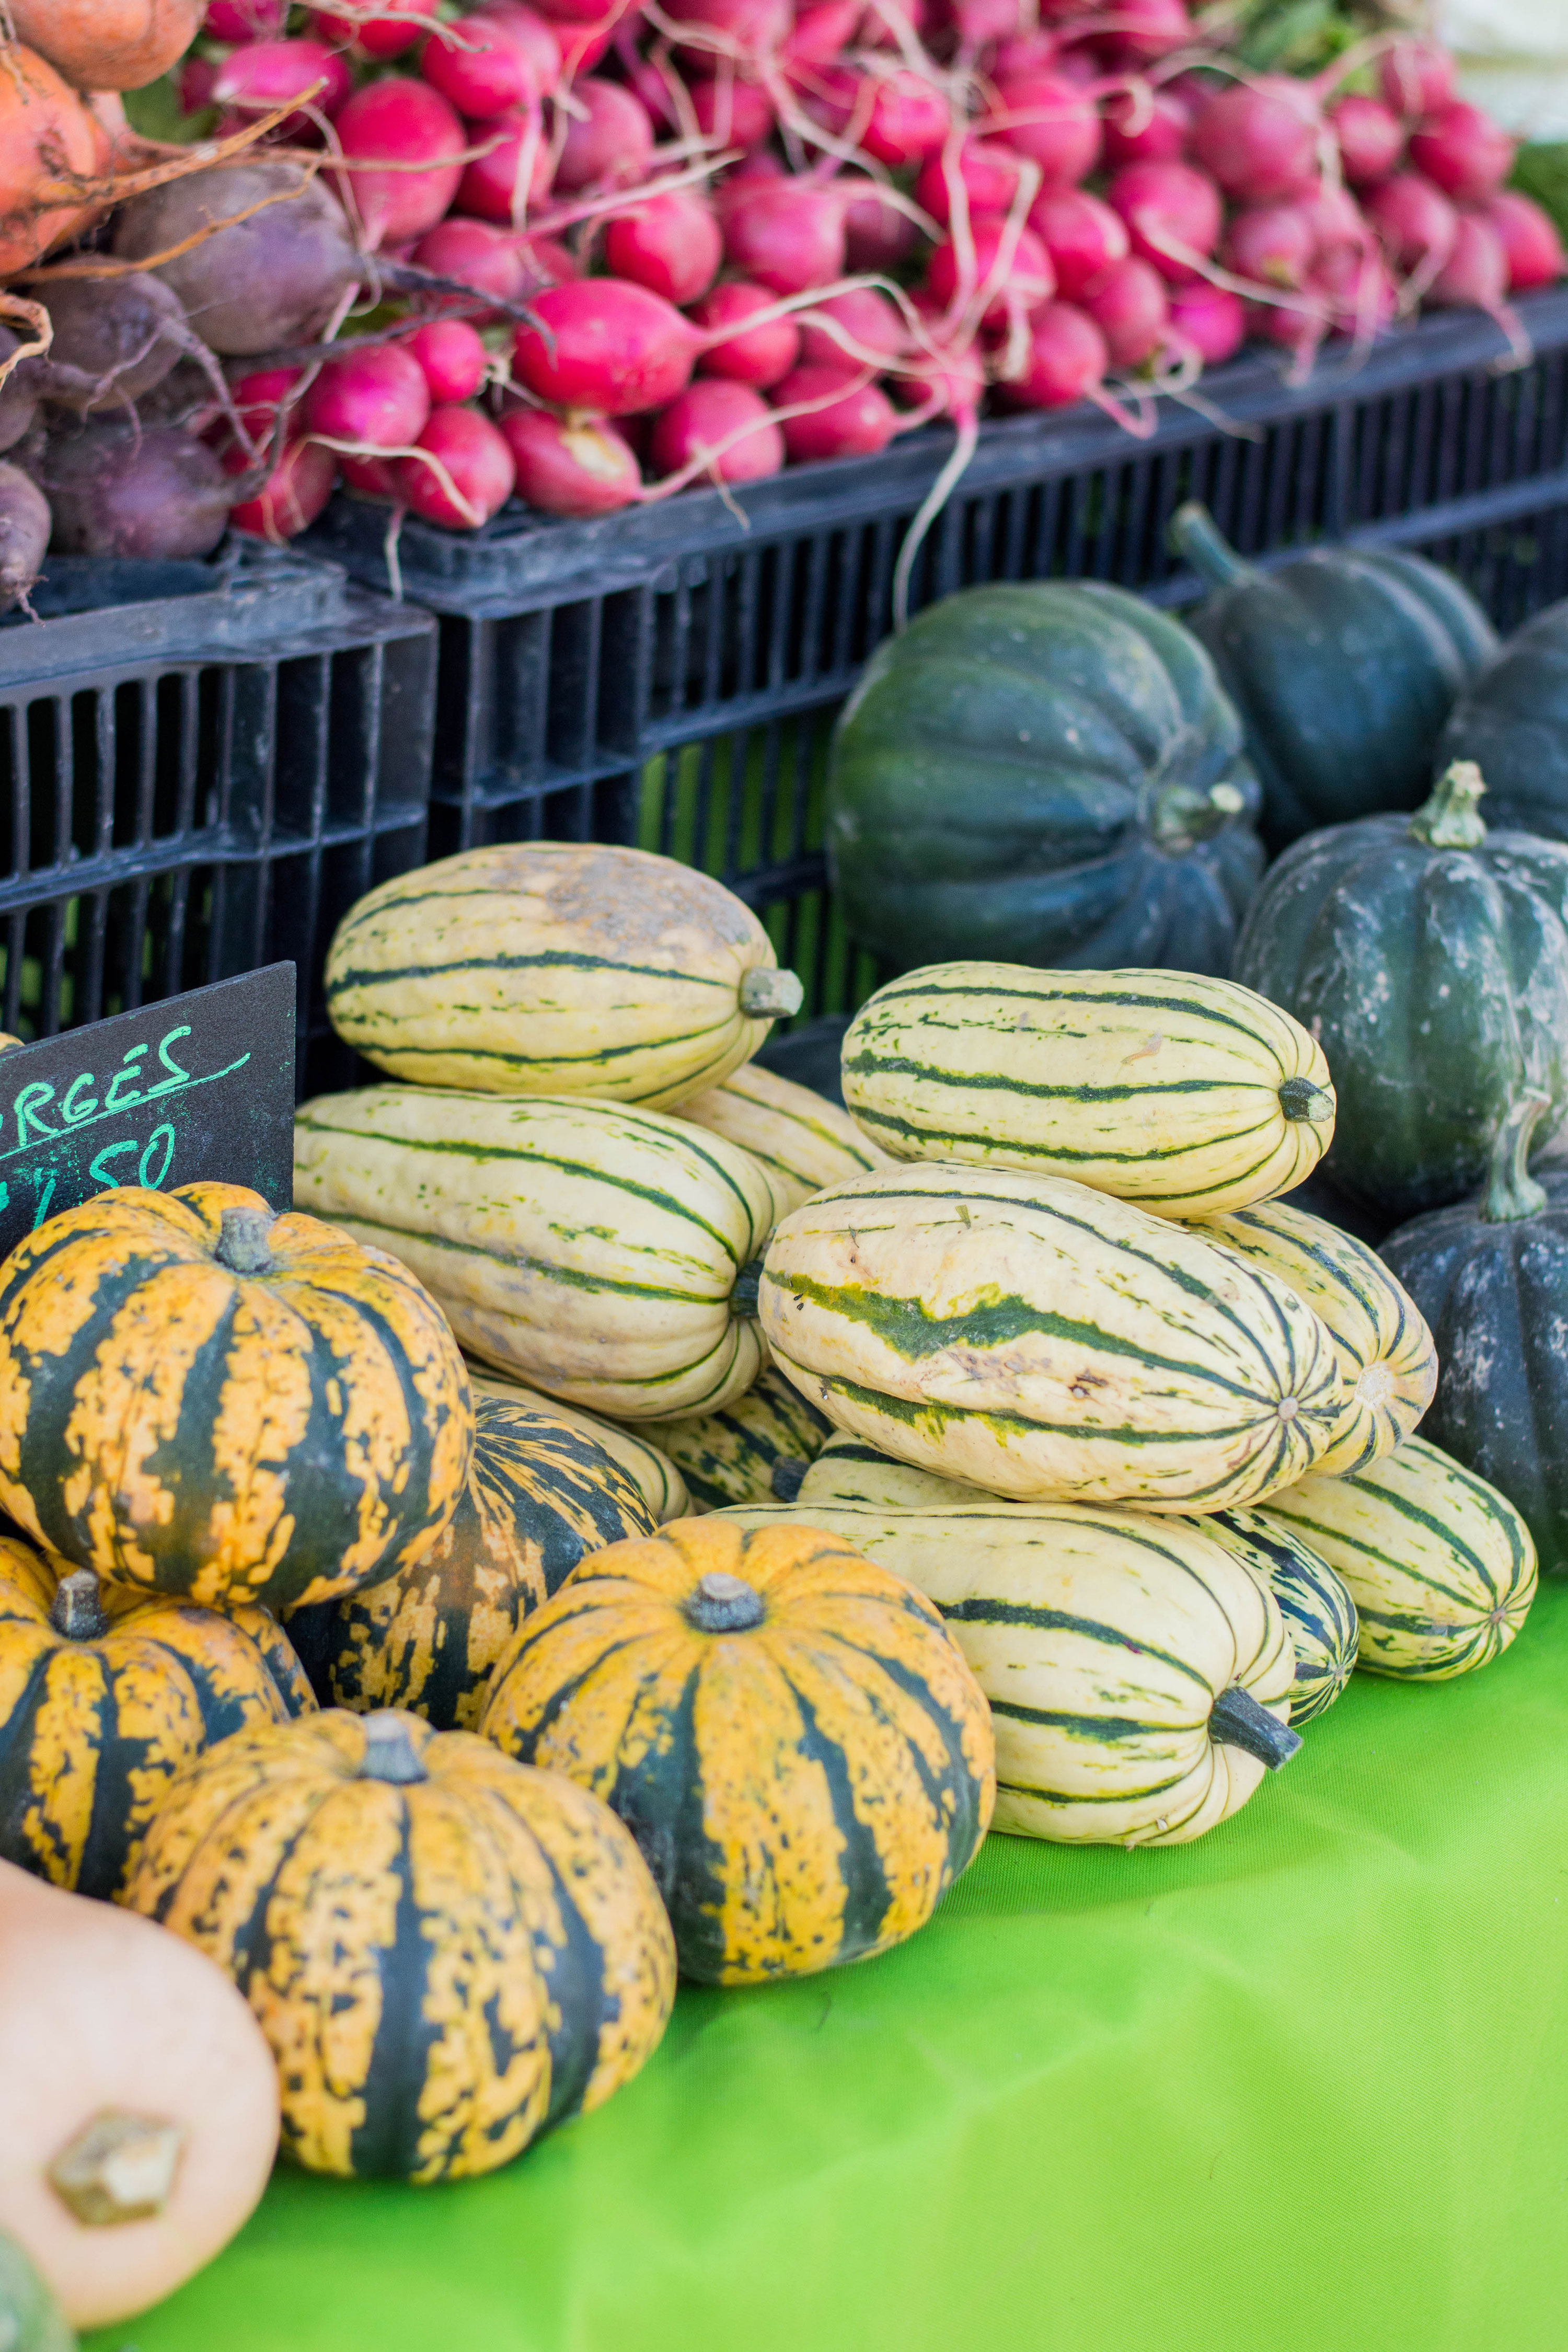 Ready for your next farmers market shopping spree? Check out my surefire tips on how to navigate your local market. #farmersmarket